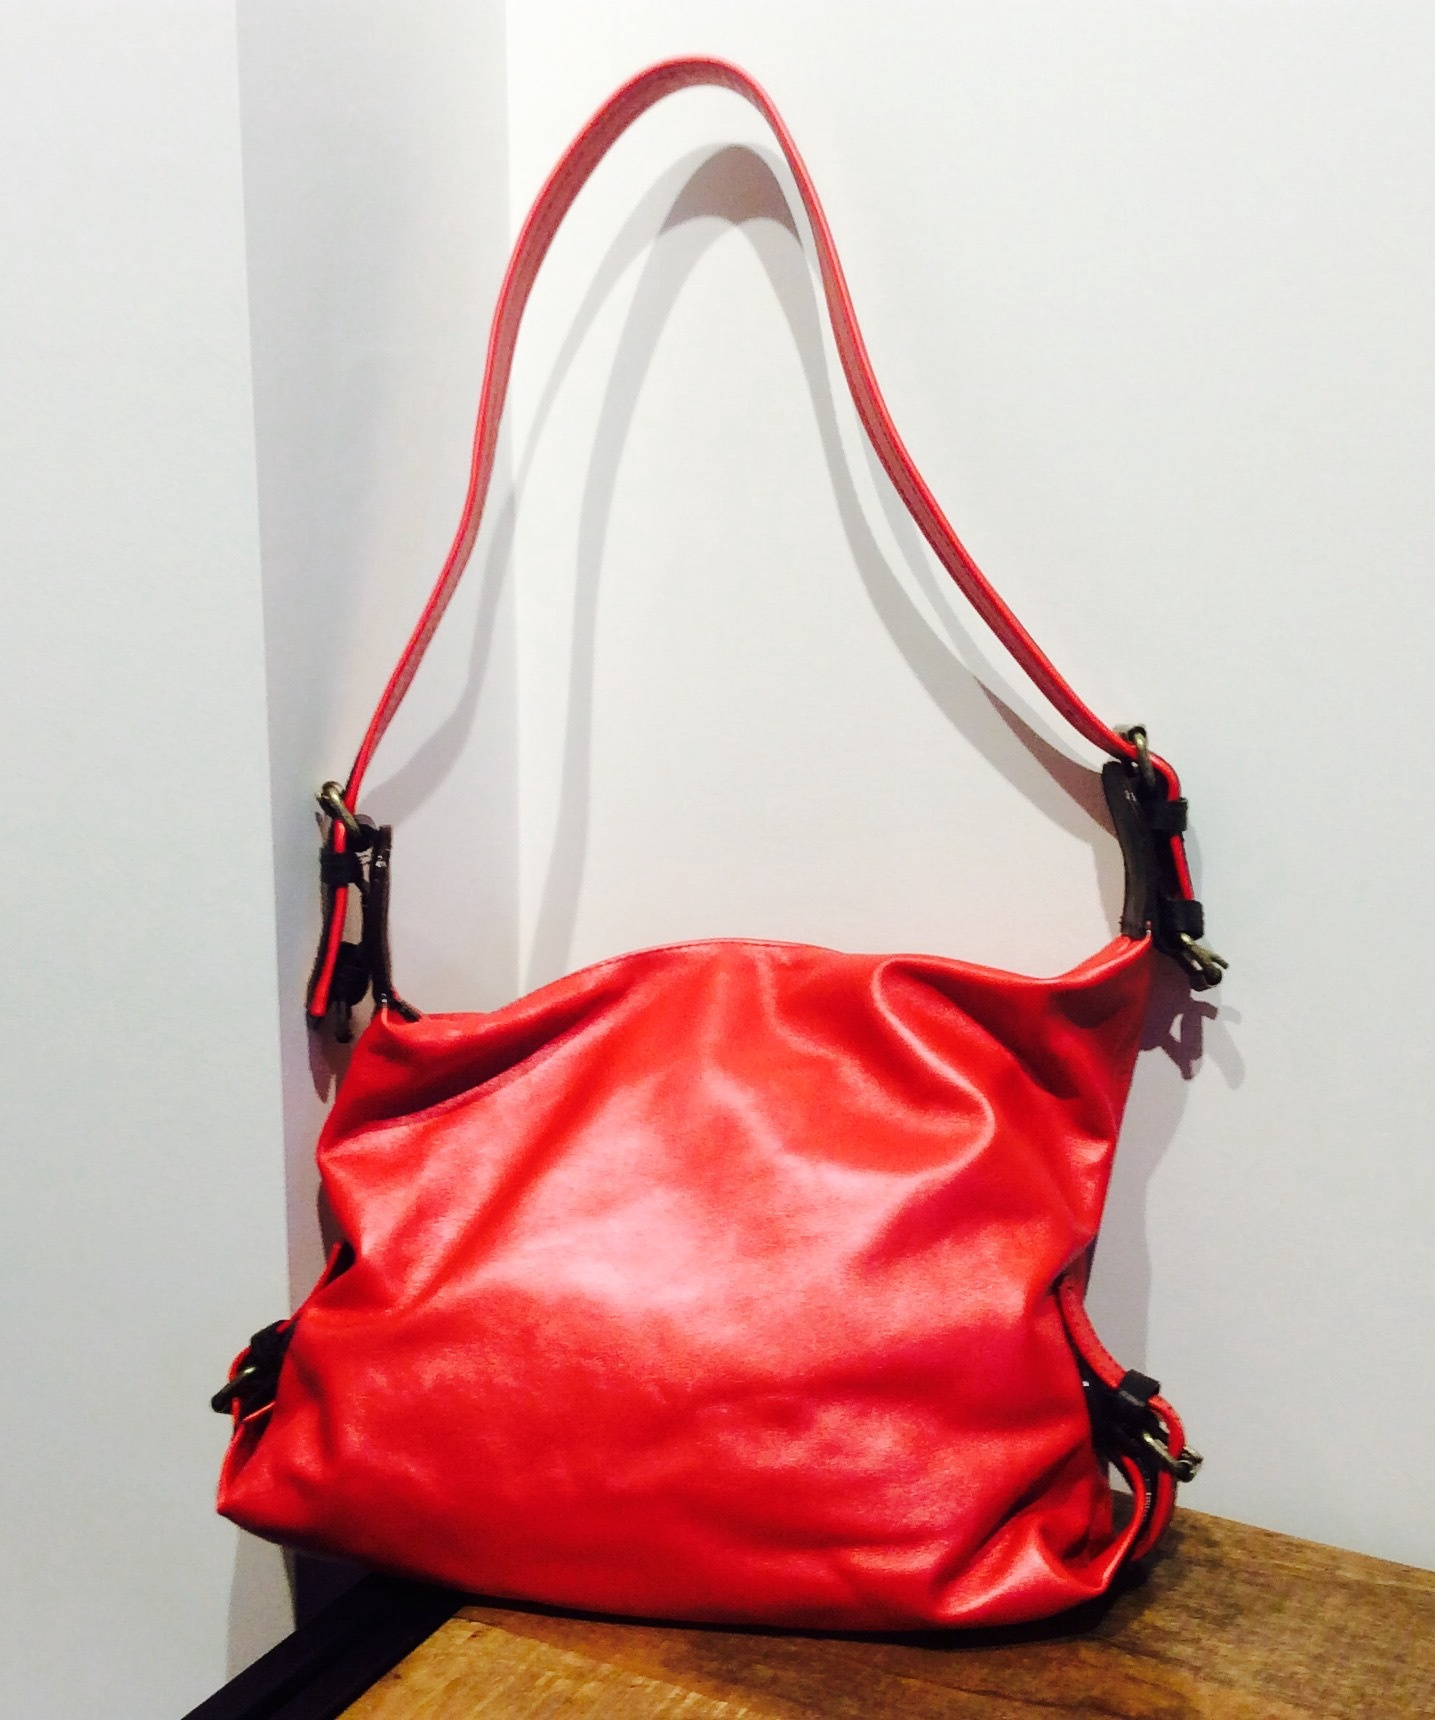 'The Jill' - Red Italian Leather Shoulder Bag